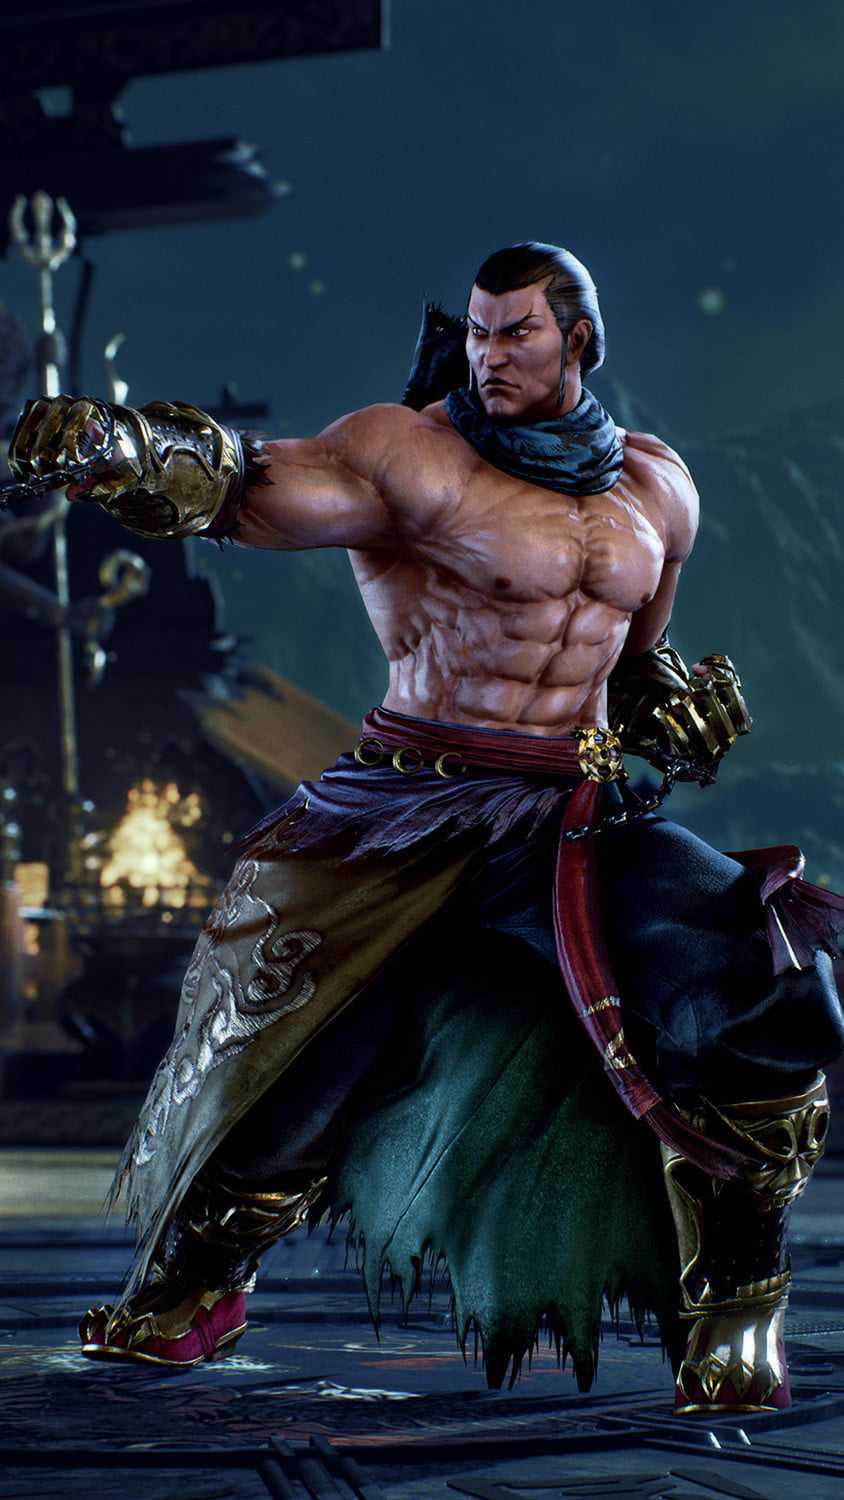 Tekken 7' delivers a polished, but traditional fighting game